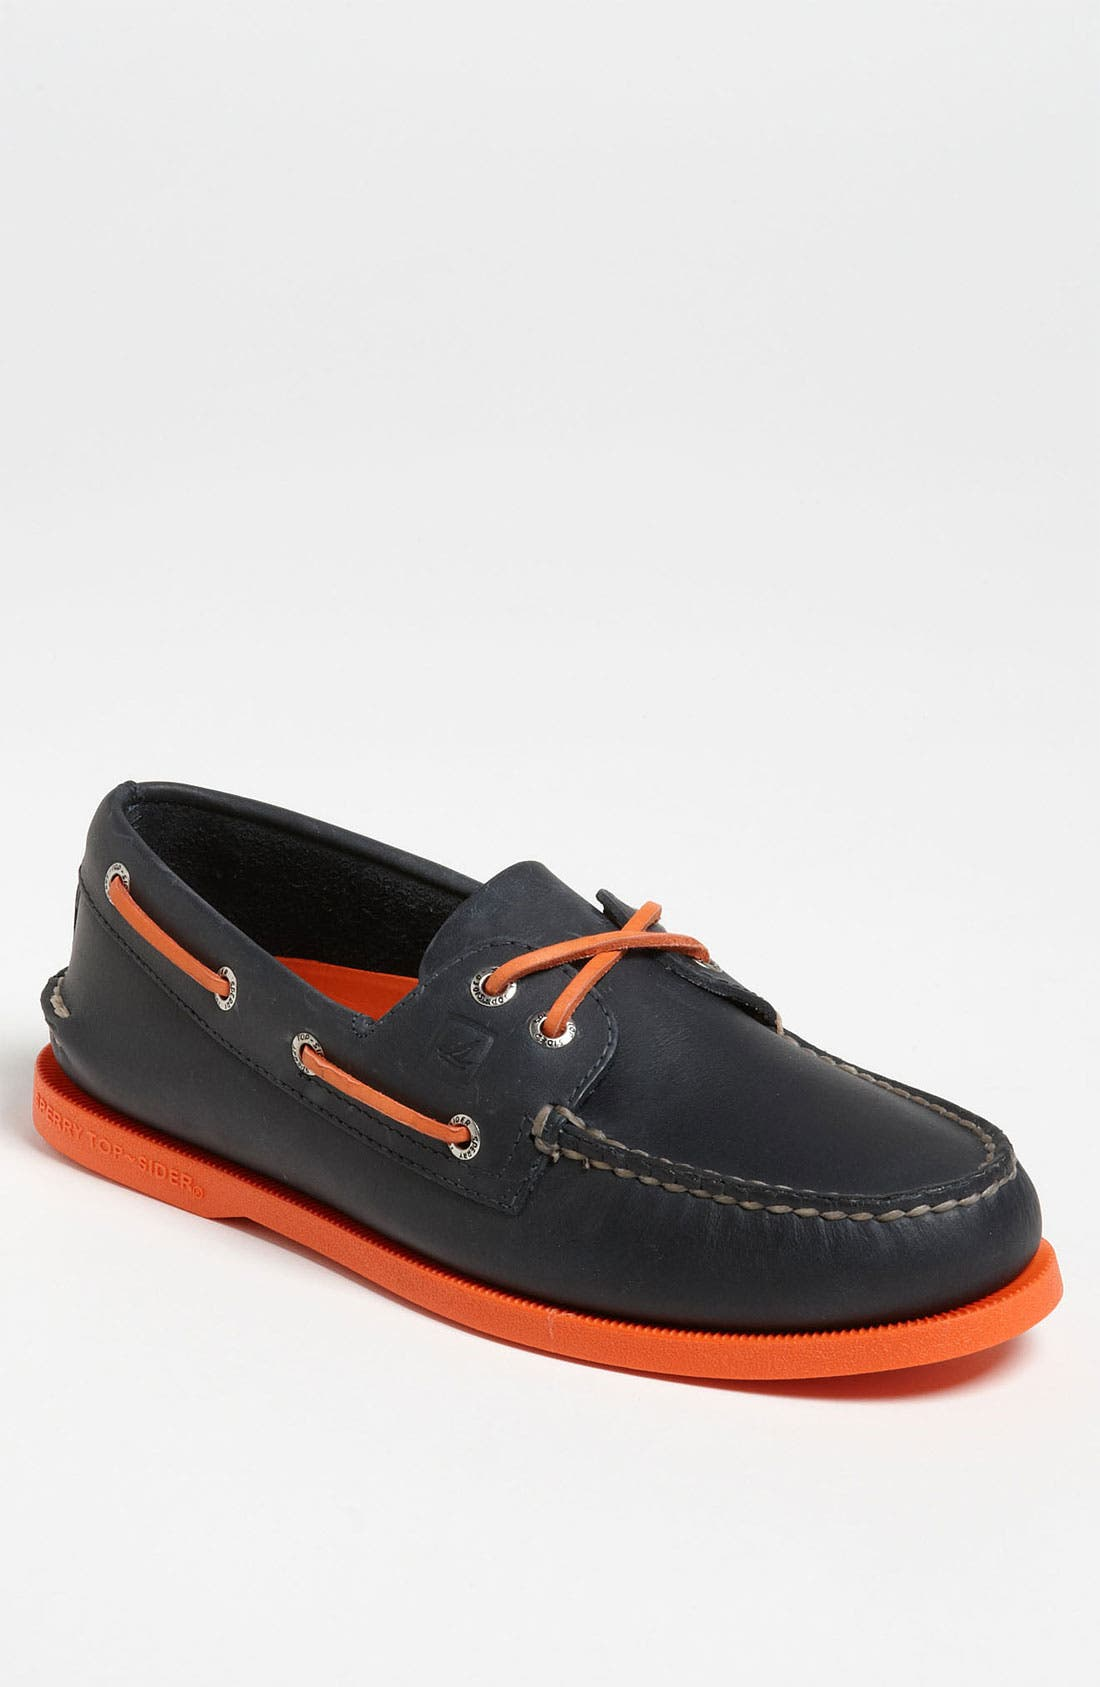 Alternate Image 1 Selected - Sperry Top-Sider® 'Authentic Original 2-Eye' Boat Shoe (Regular Retail Price: $89.95)